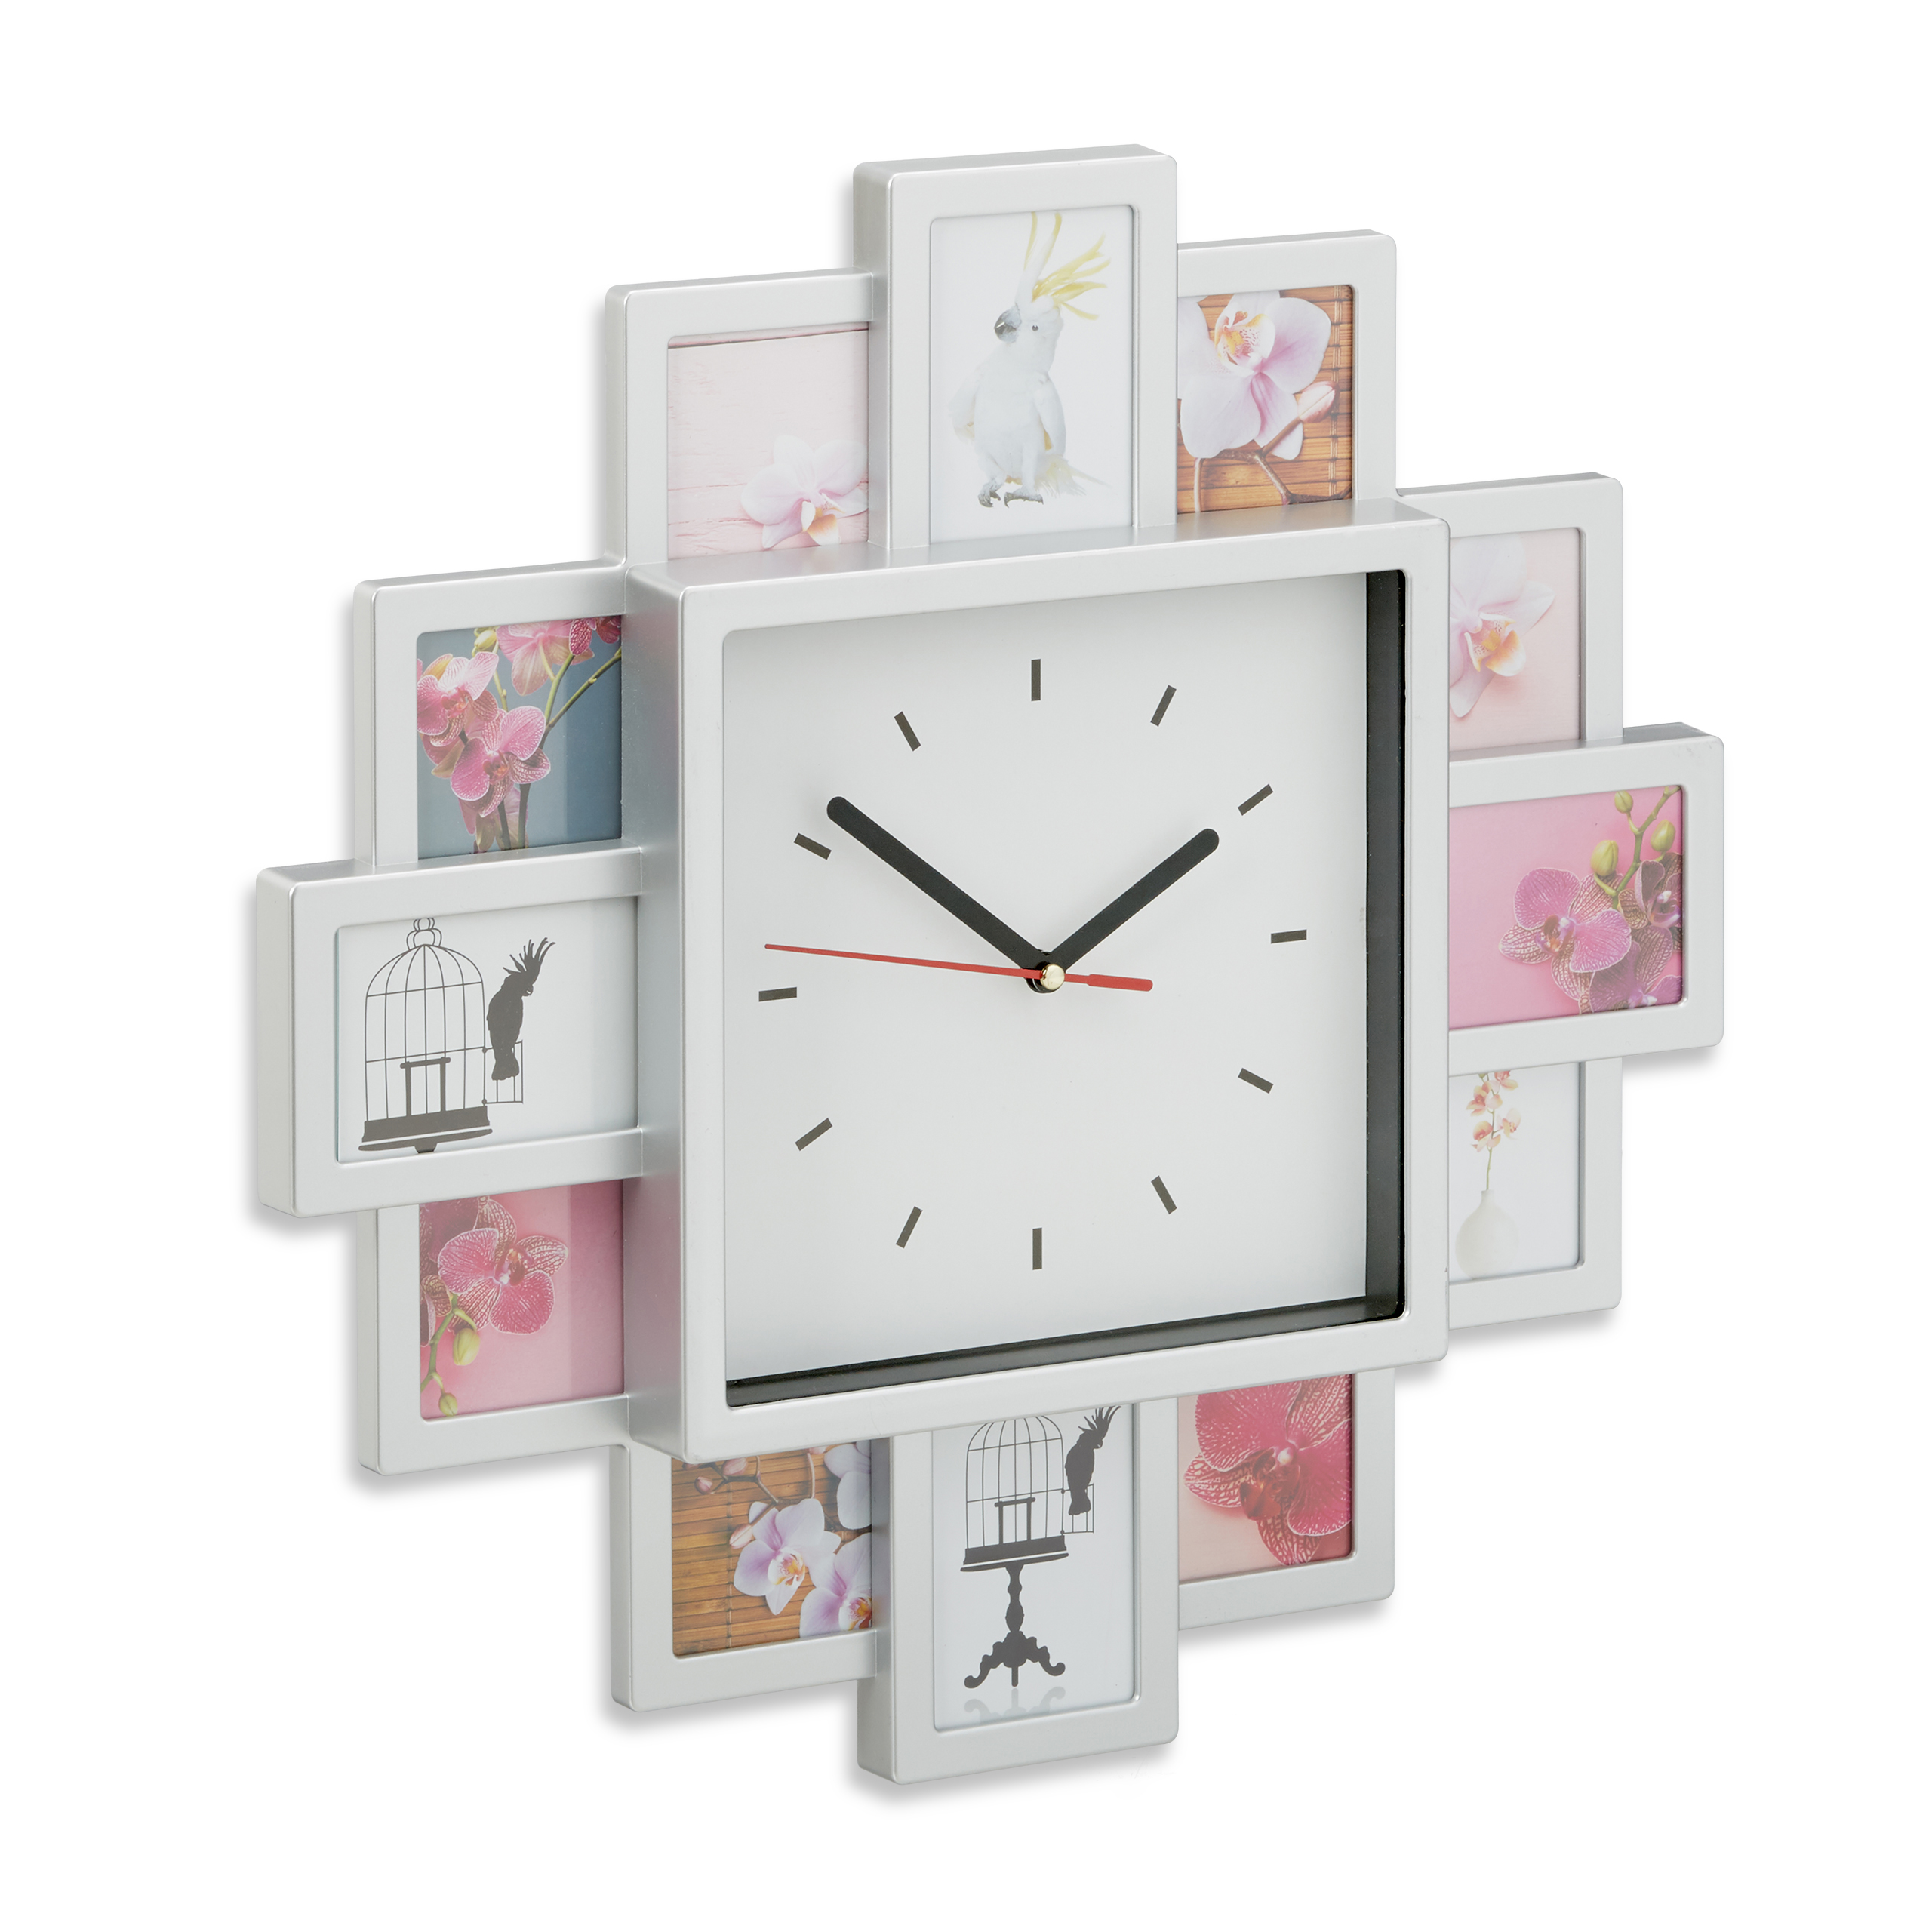 Wall-Clock-with-Picture-Frames-Photo-Clock-DIY-Kit-Standard-Analogue-Clock